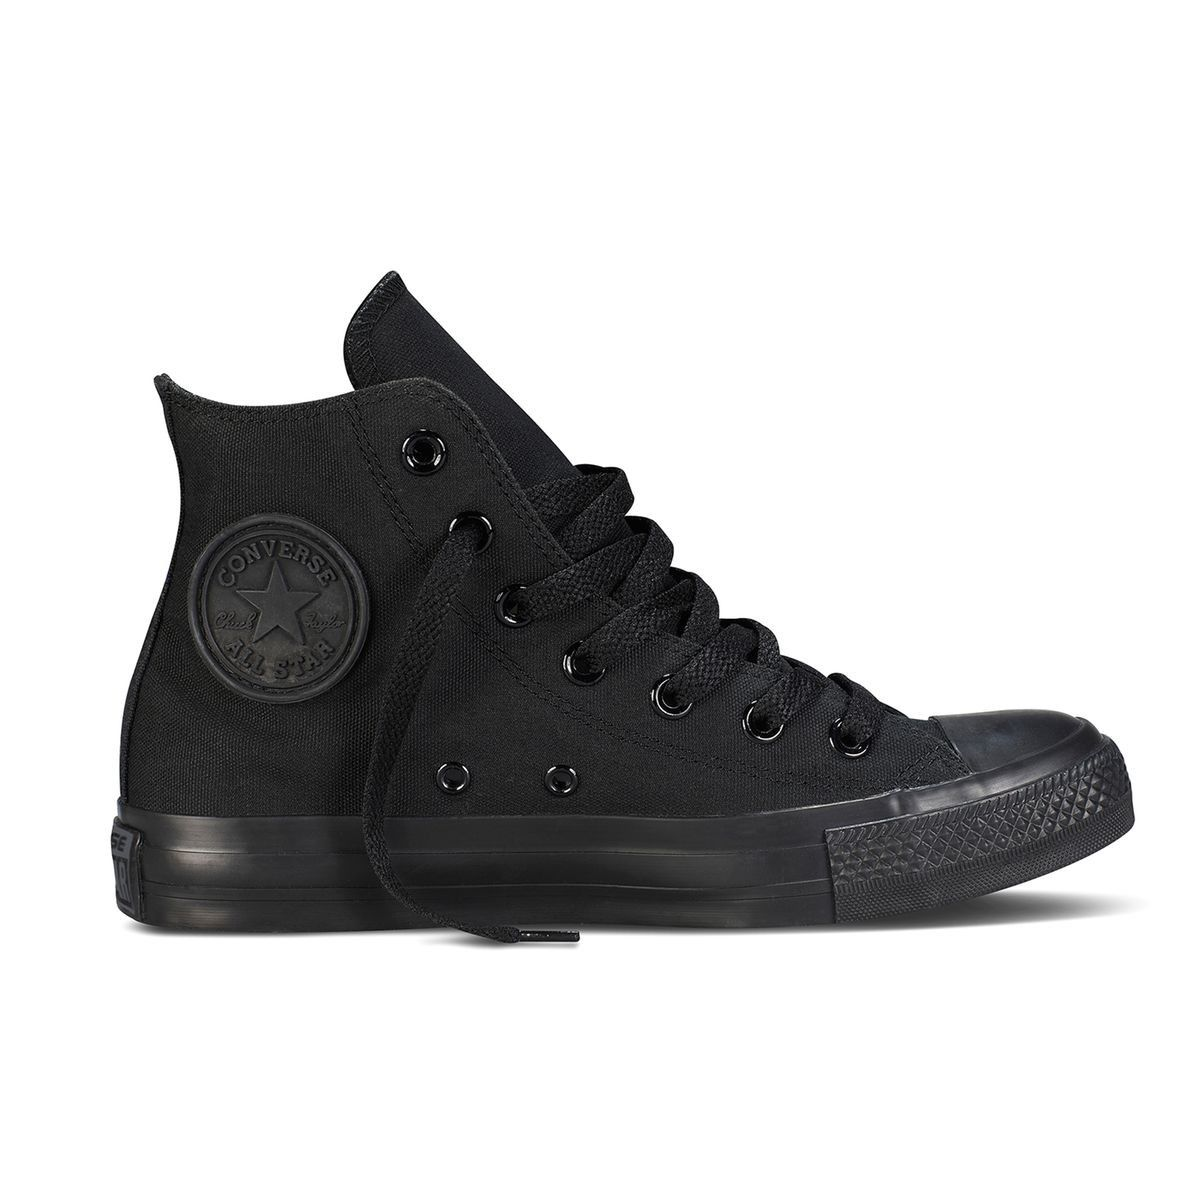 Baskets et Sneakers CONVERSE CTAS HI CANVAS FEMME Noir